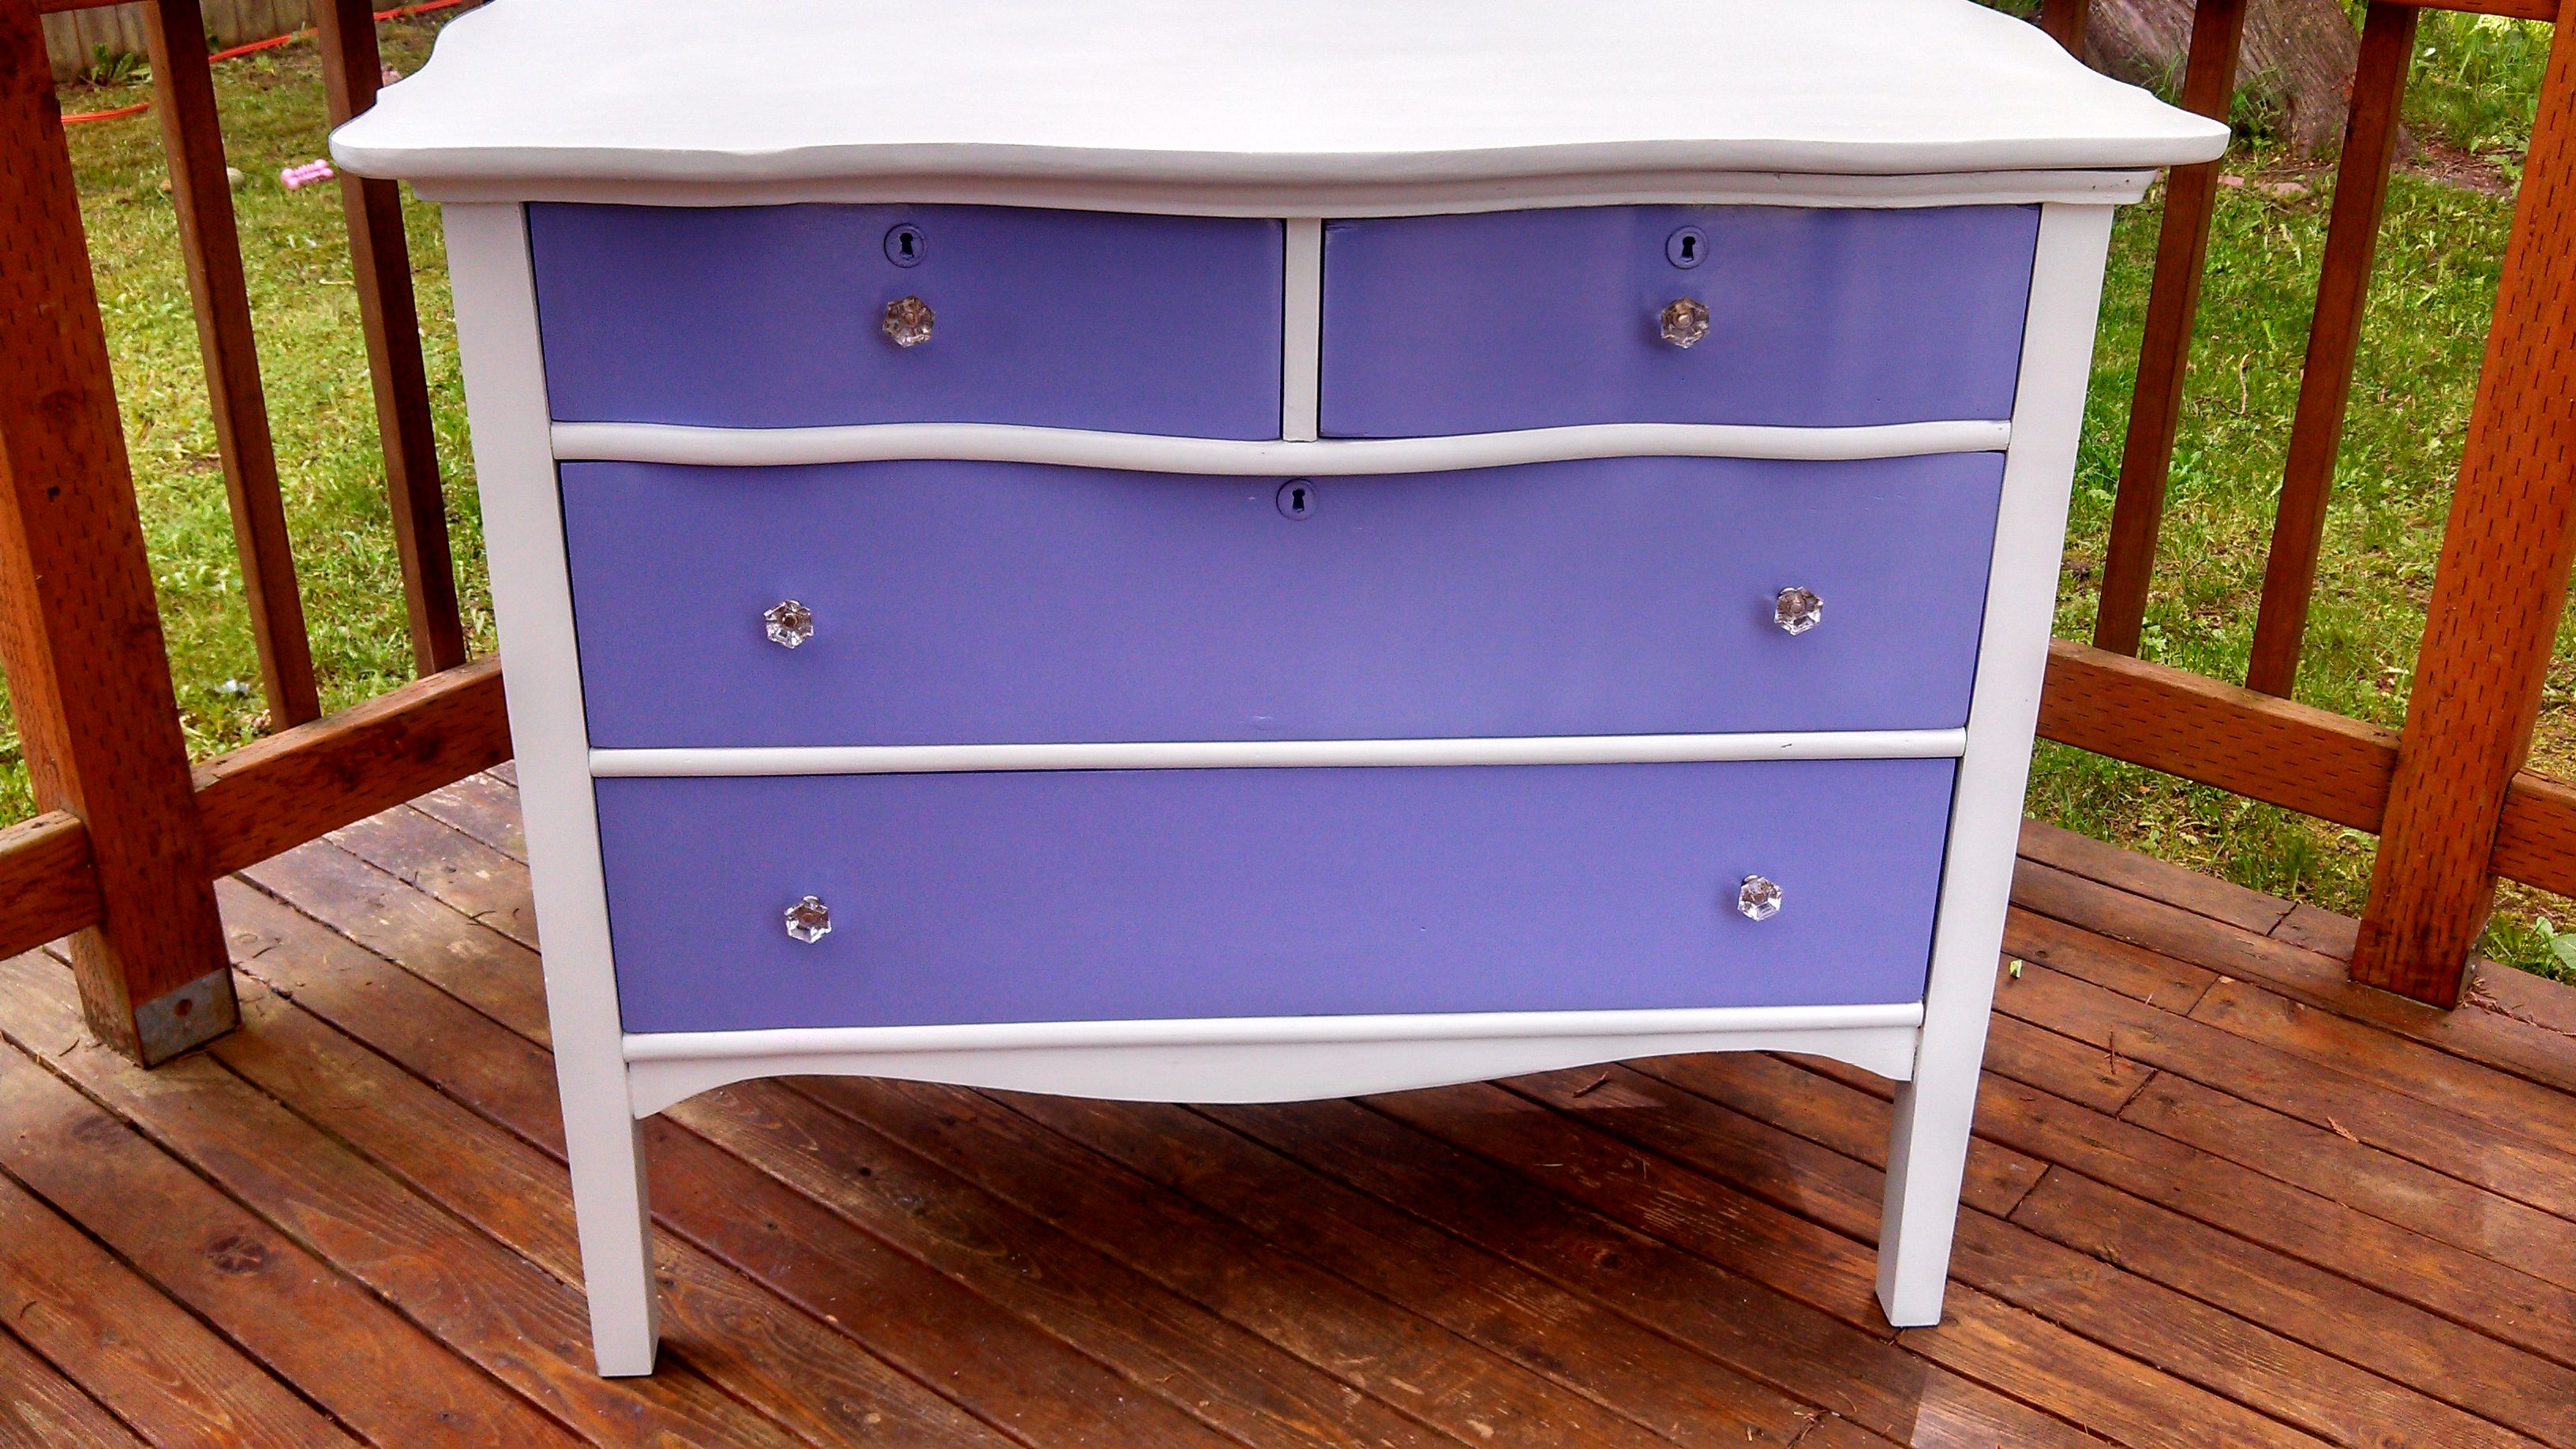 This is a beautiful dresser that I have a refinished, its